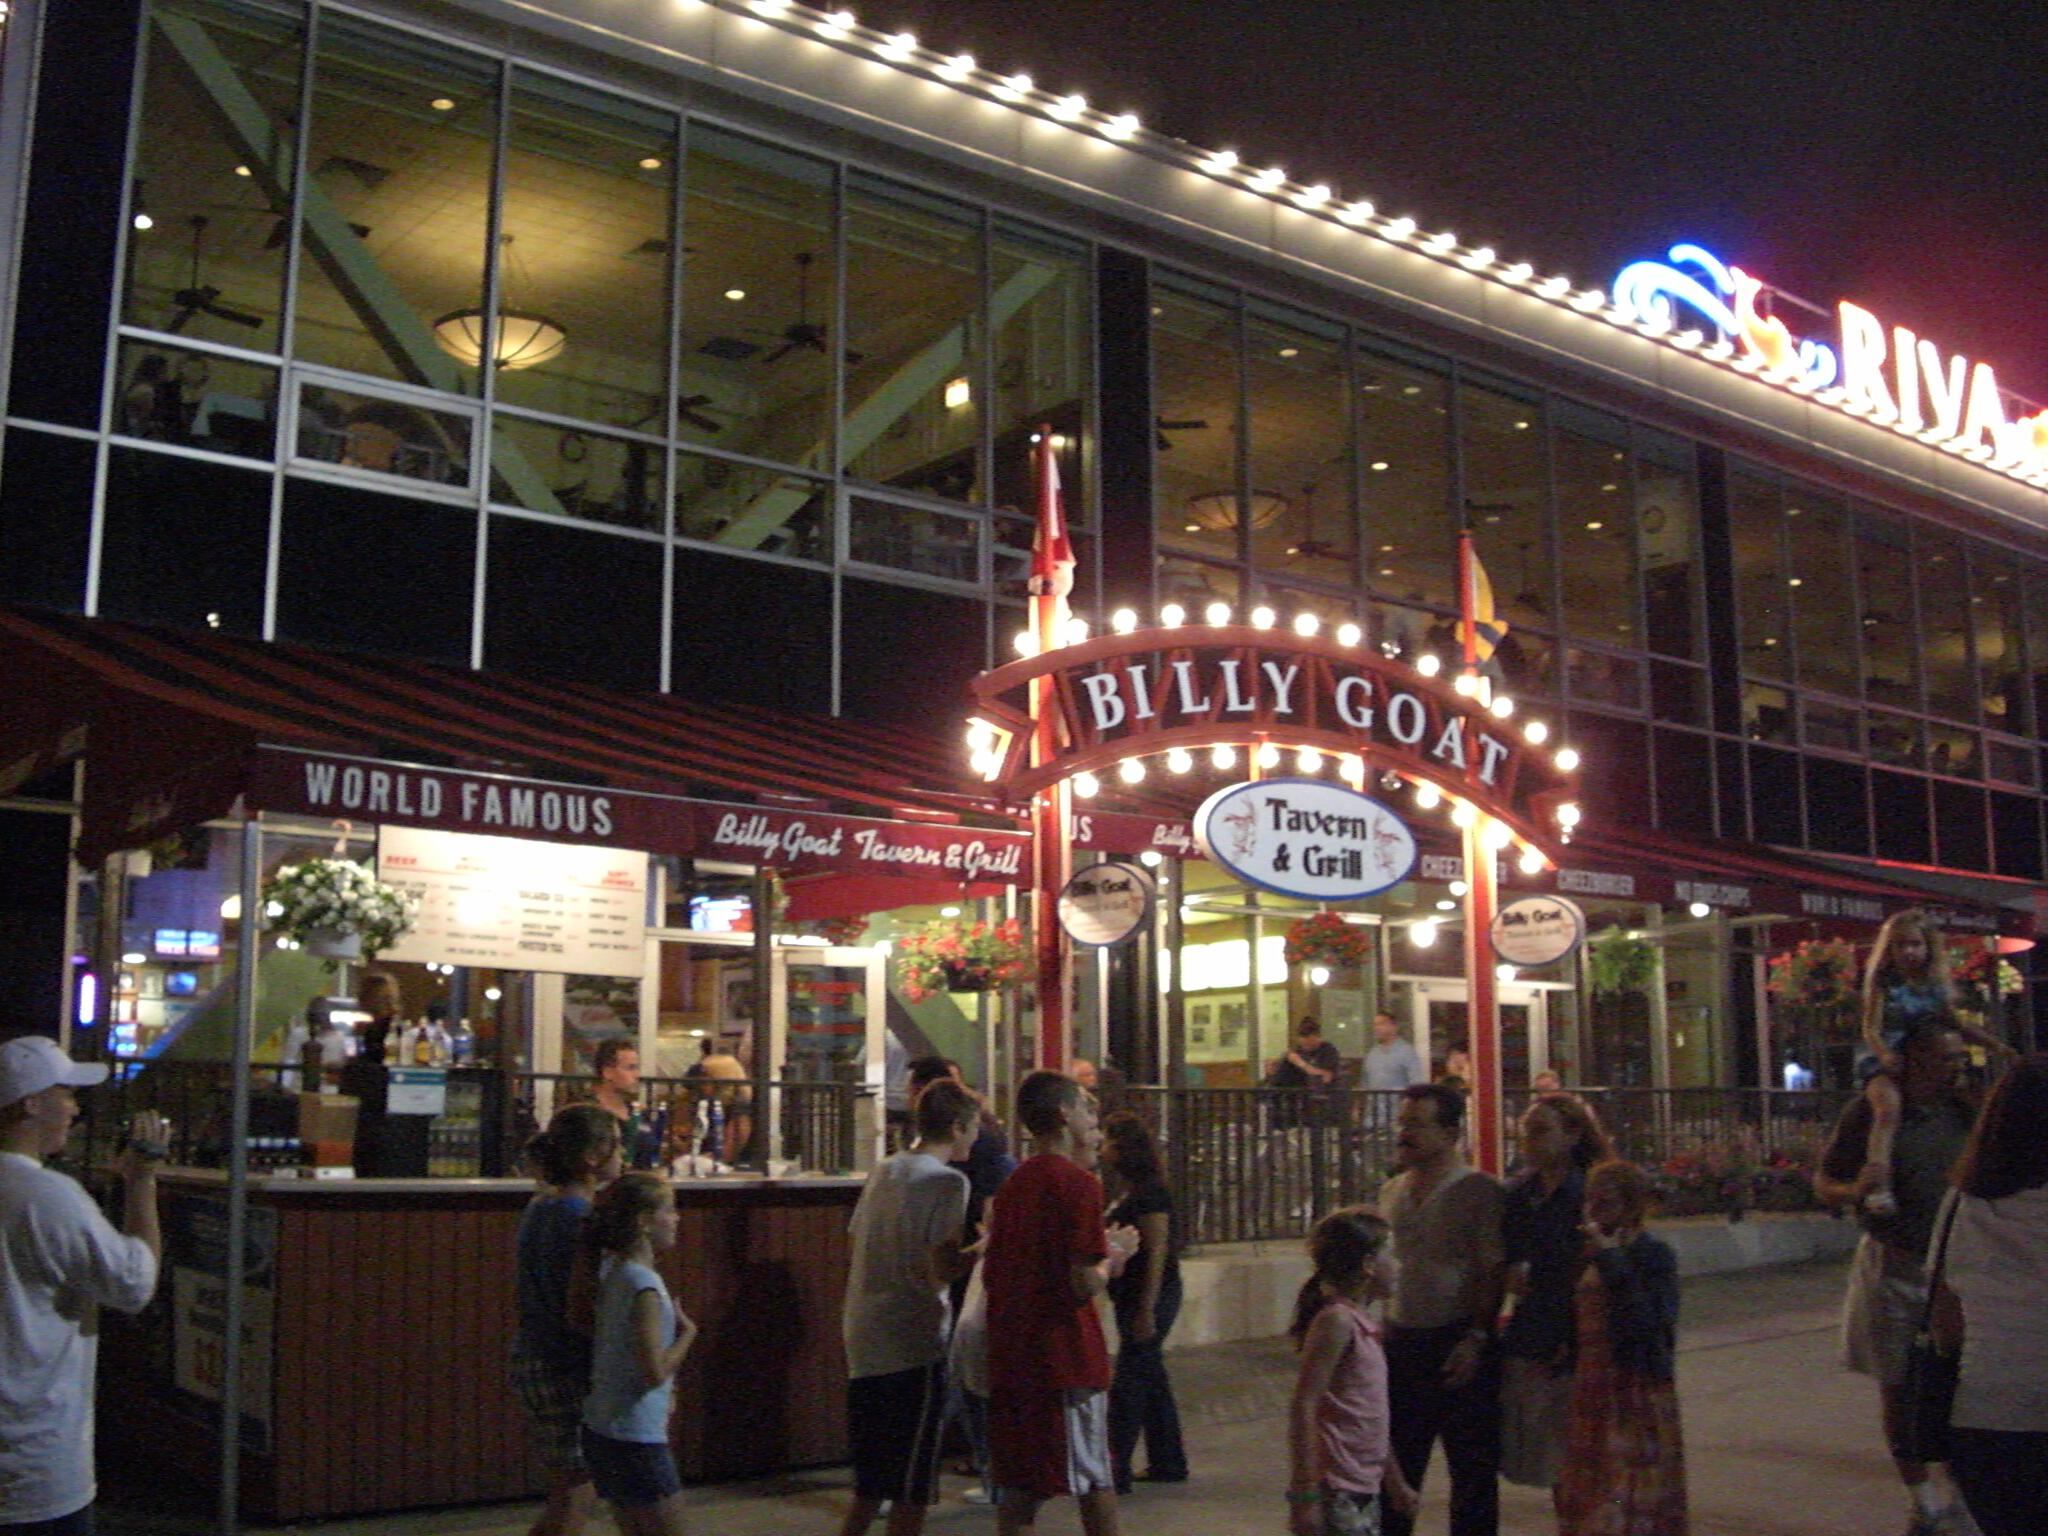 World Famous Billy Goat Tavern & Grill Navy Pier Chicago